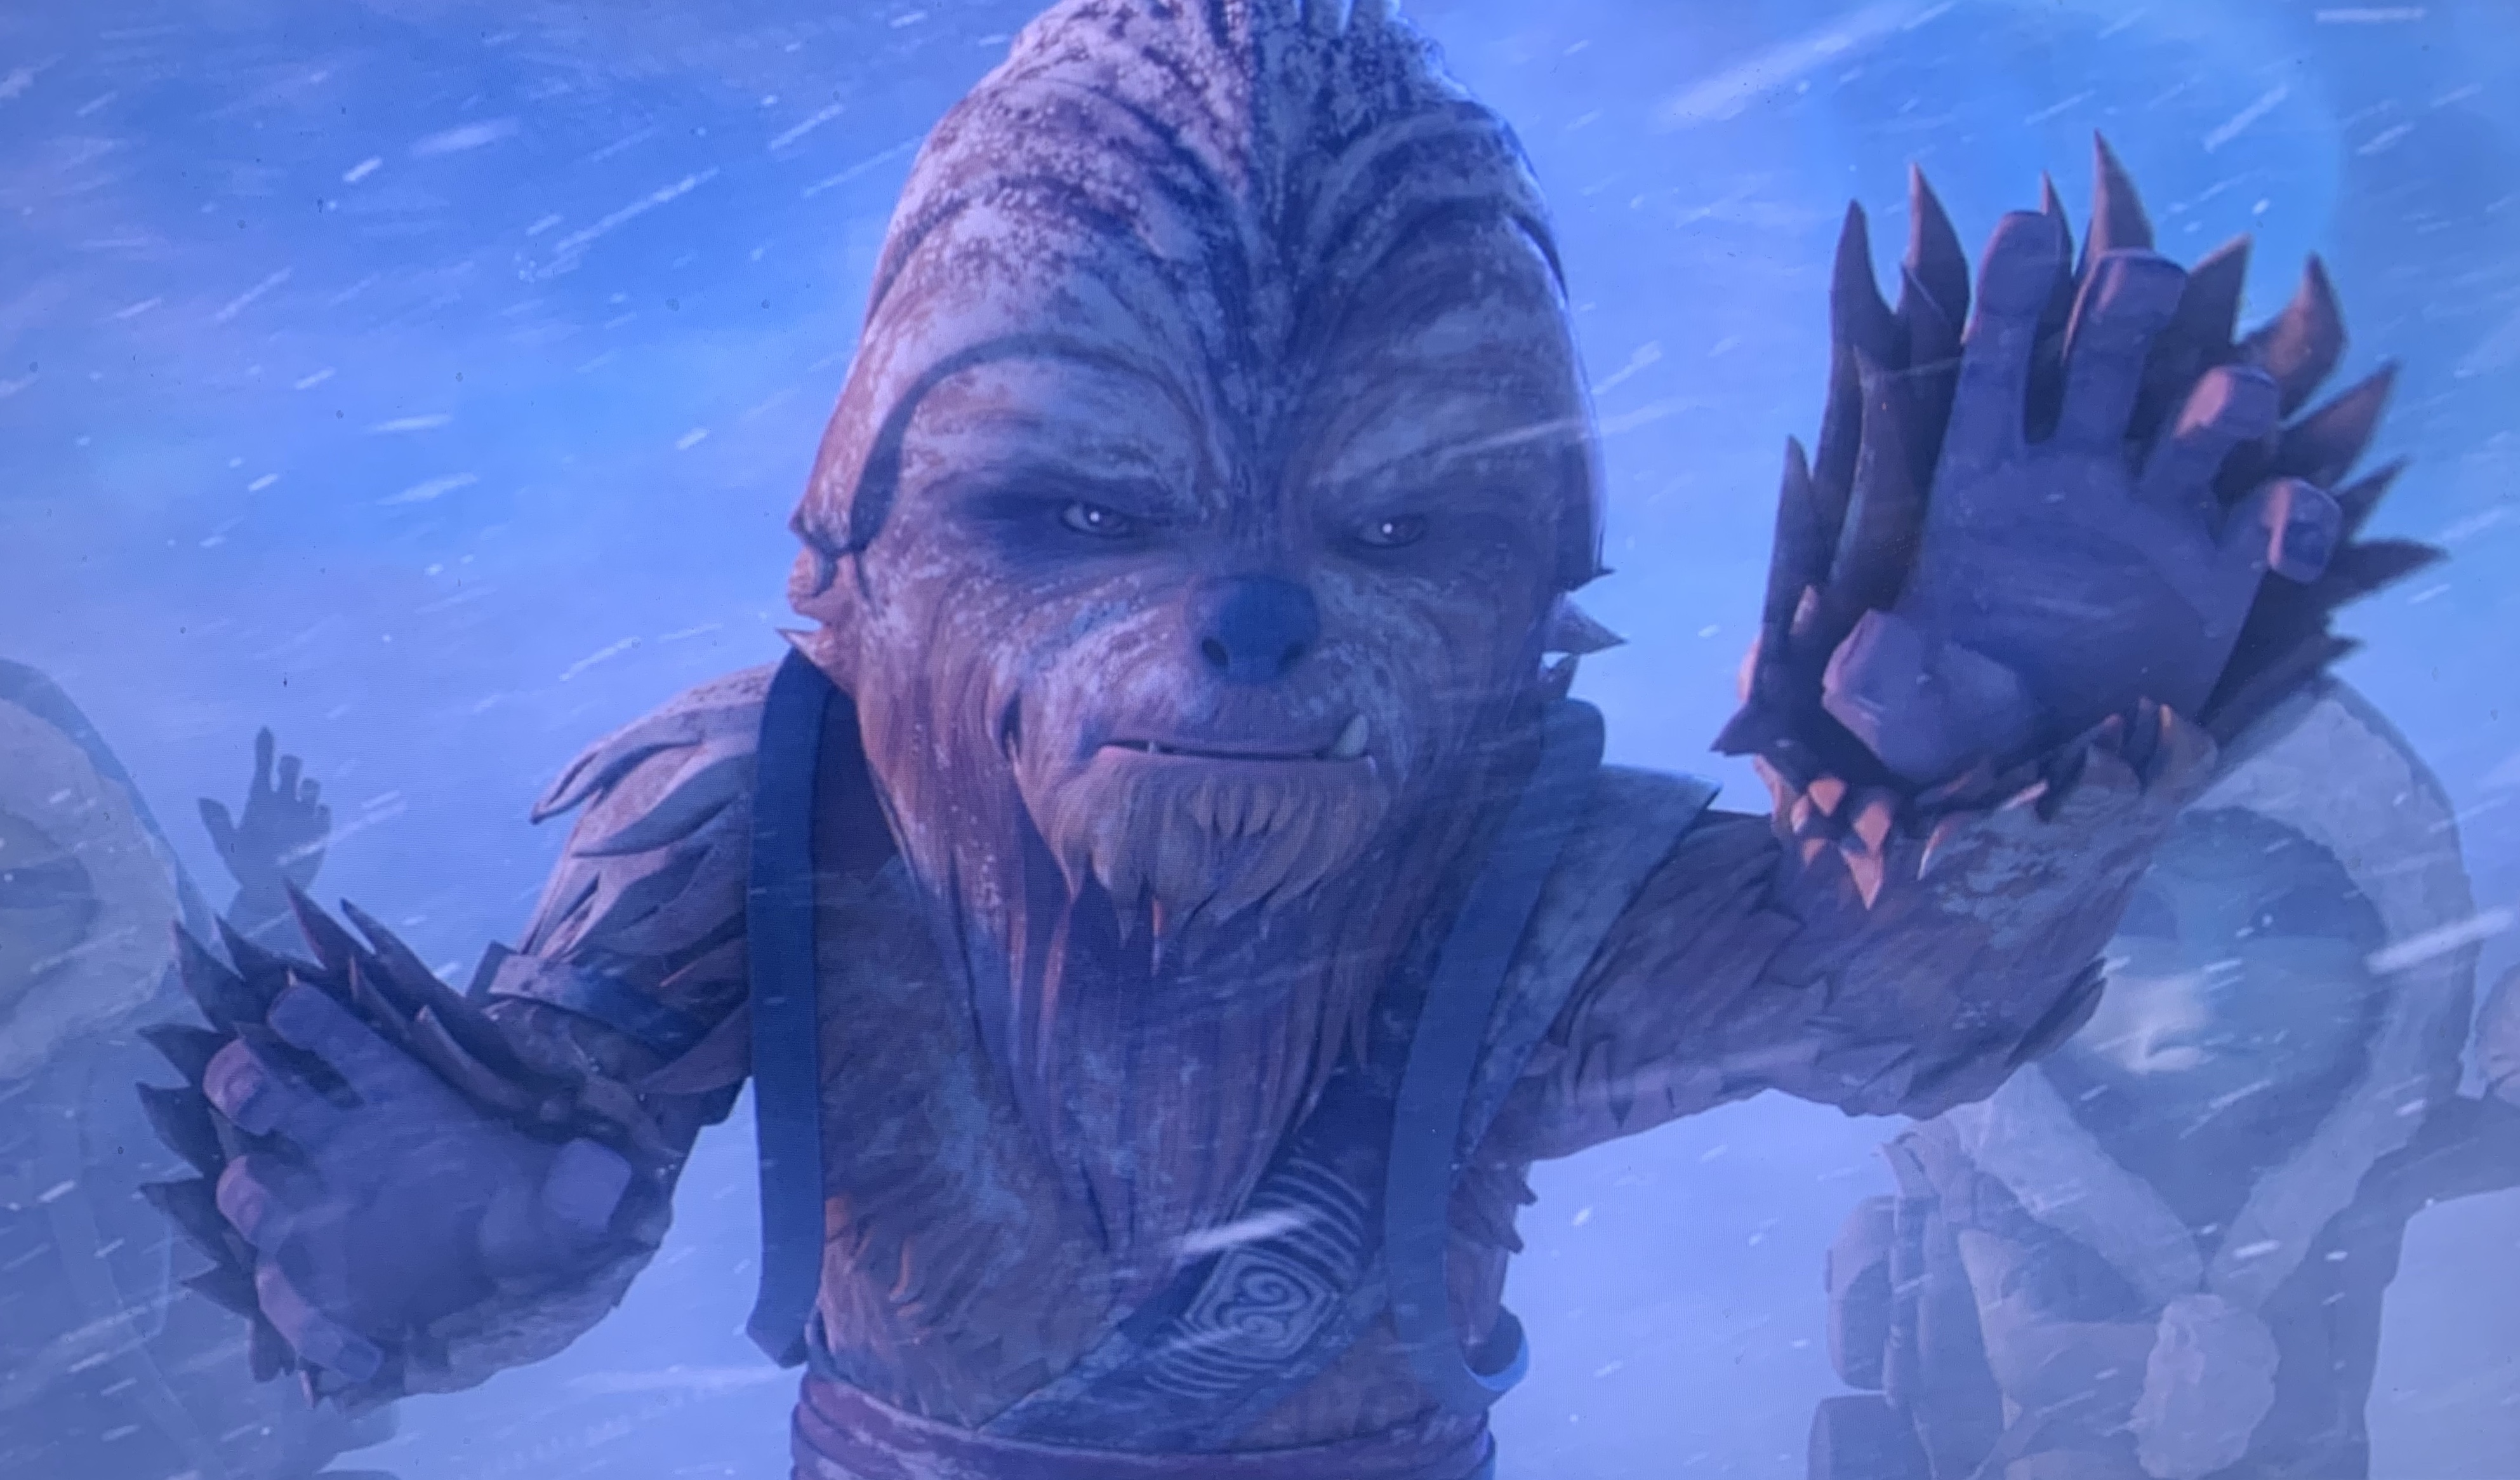 Gungi Wookiee Jedi : Gungi was a male wookiee jedi youngling who was training to become a jedi in the jedi order during the clone wars.